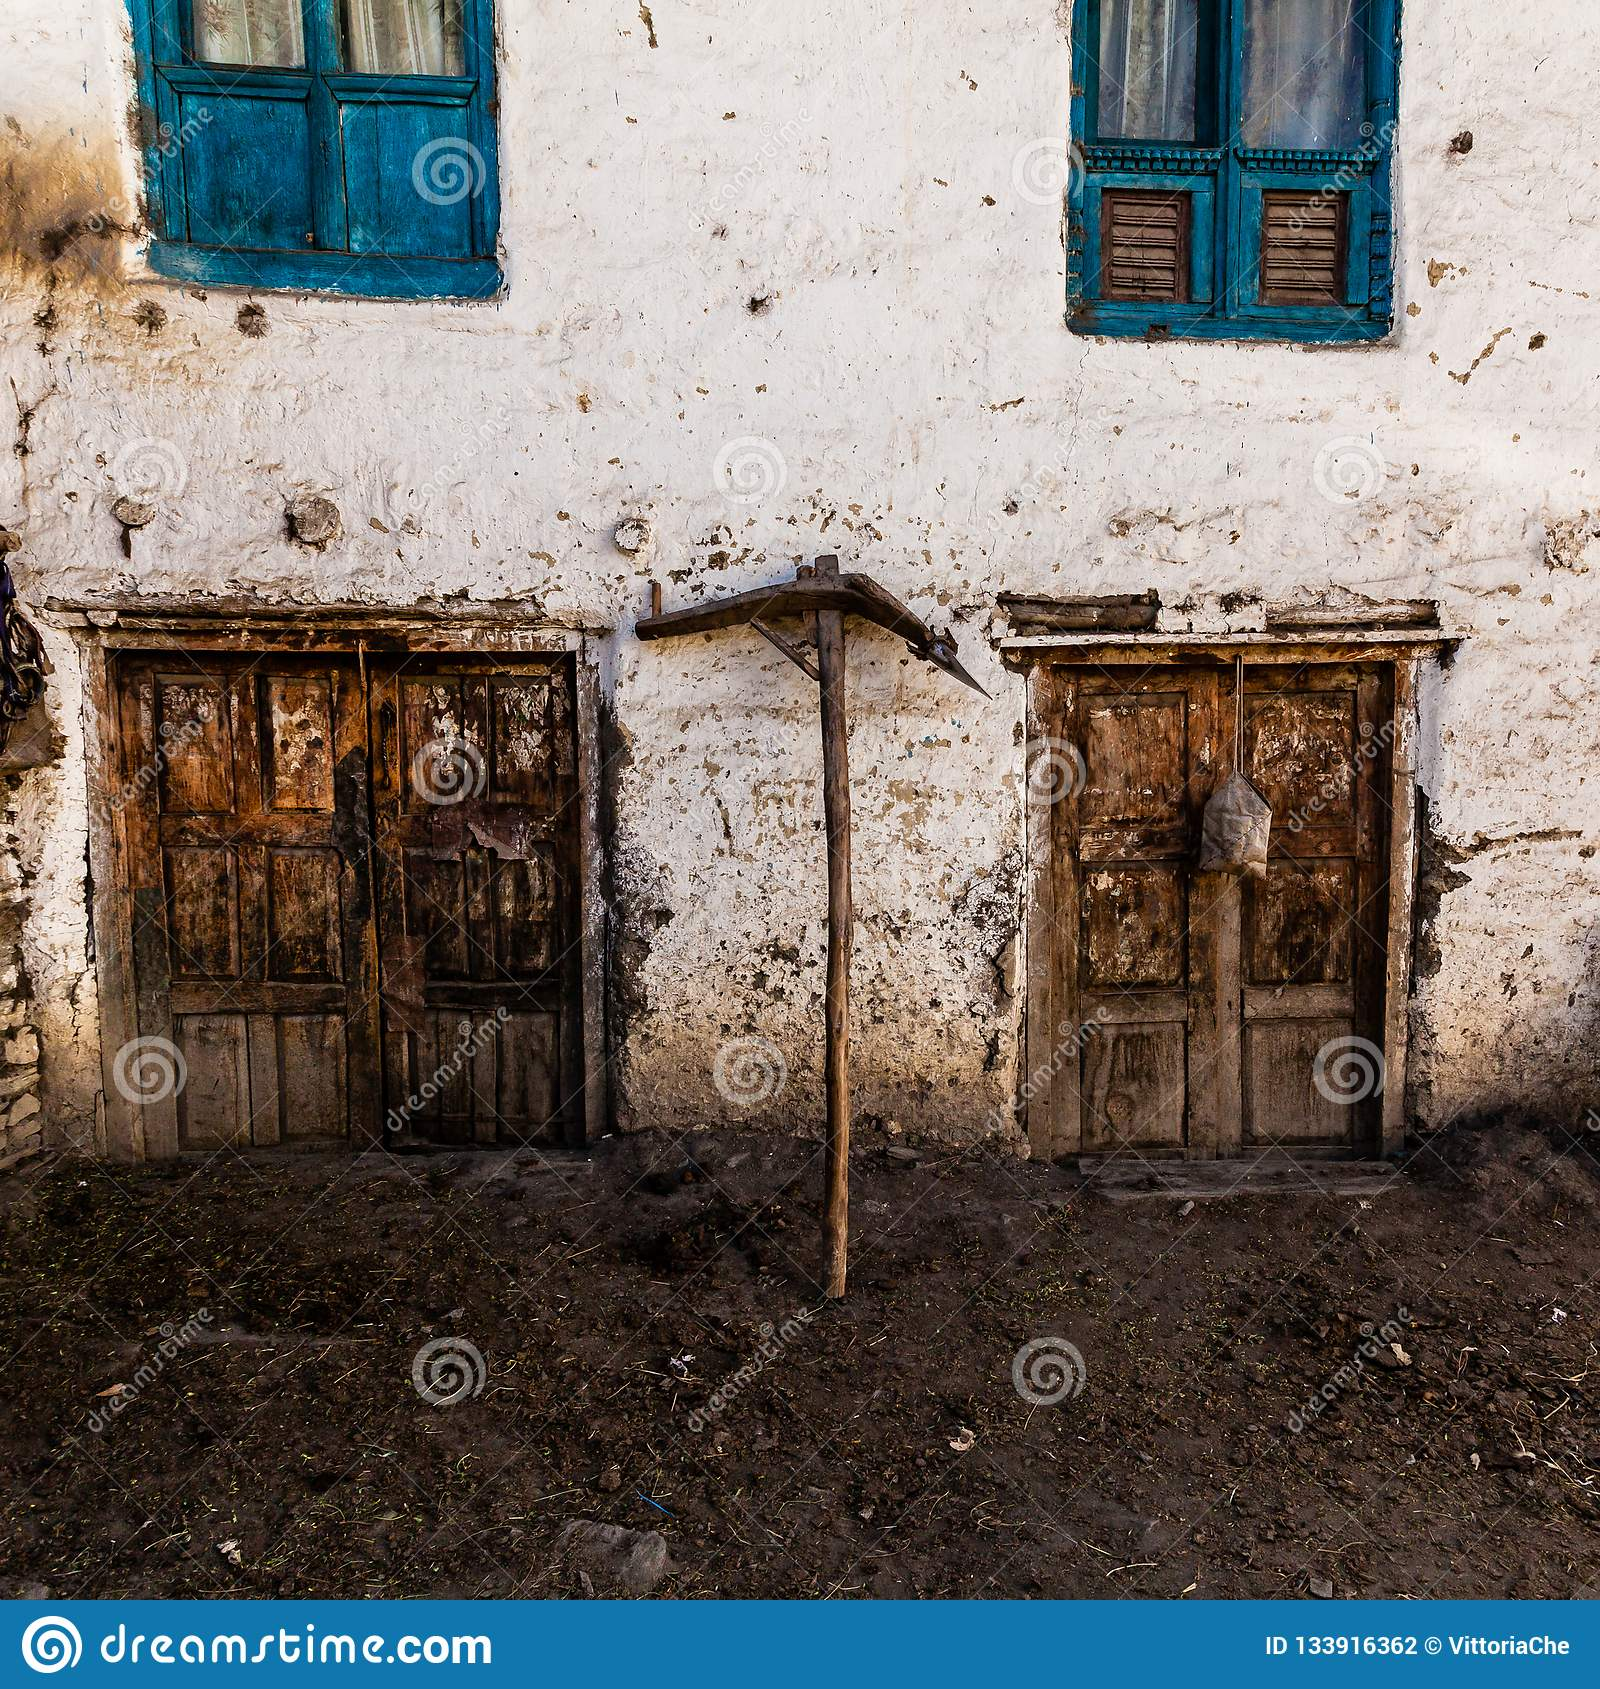 Old fashioned traditional dirty wood windows and doors in small mountain village in Nepal